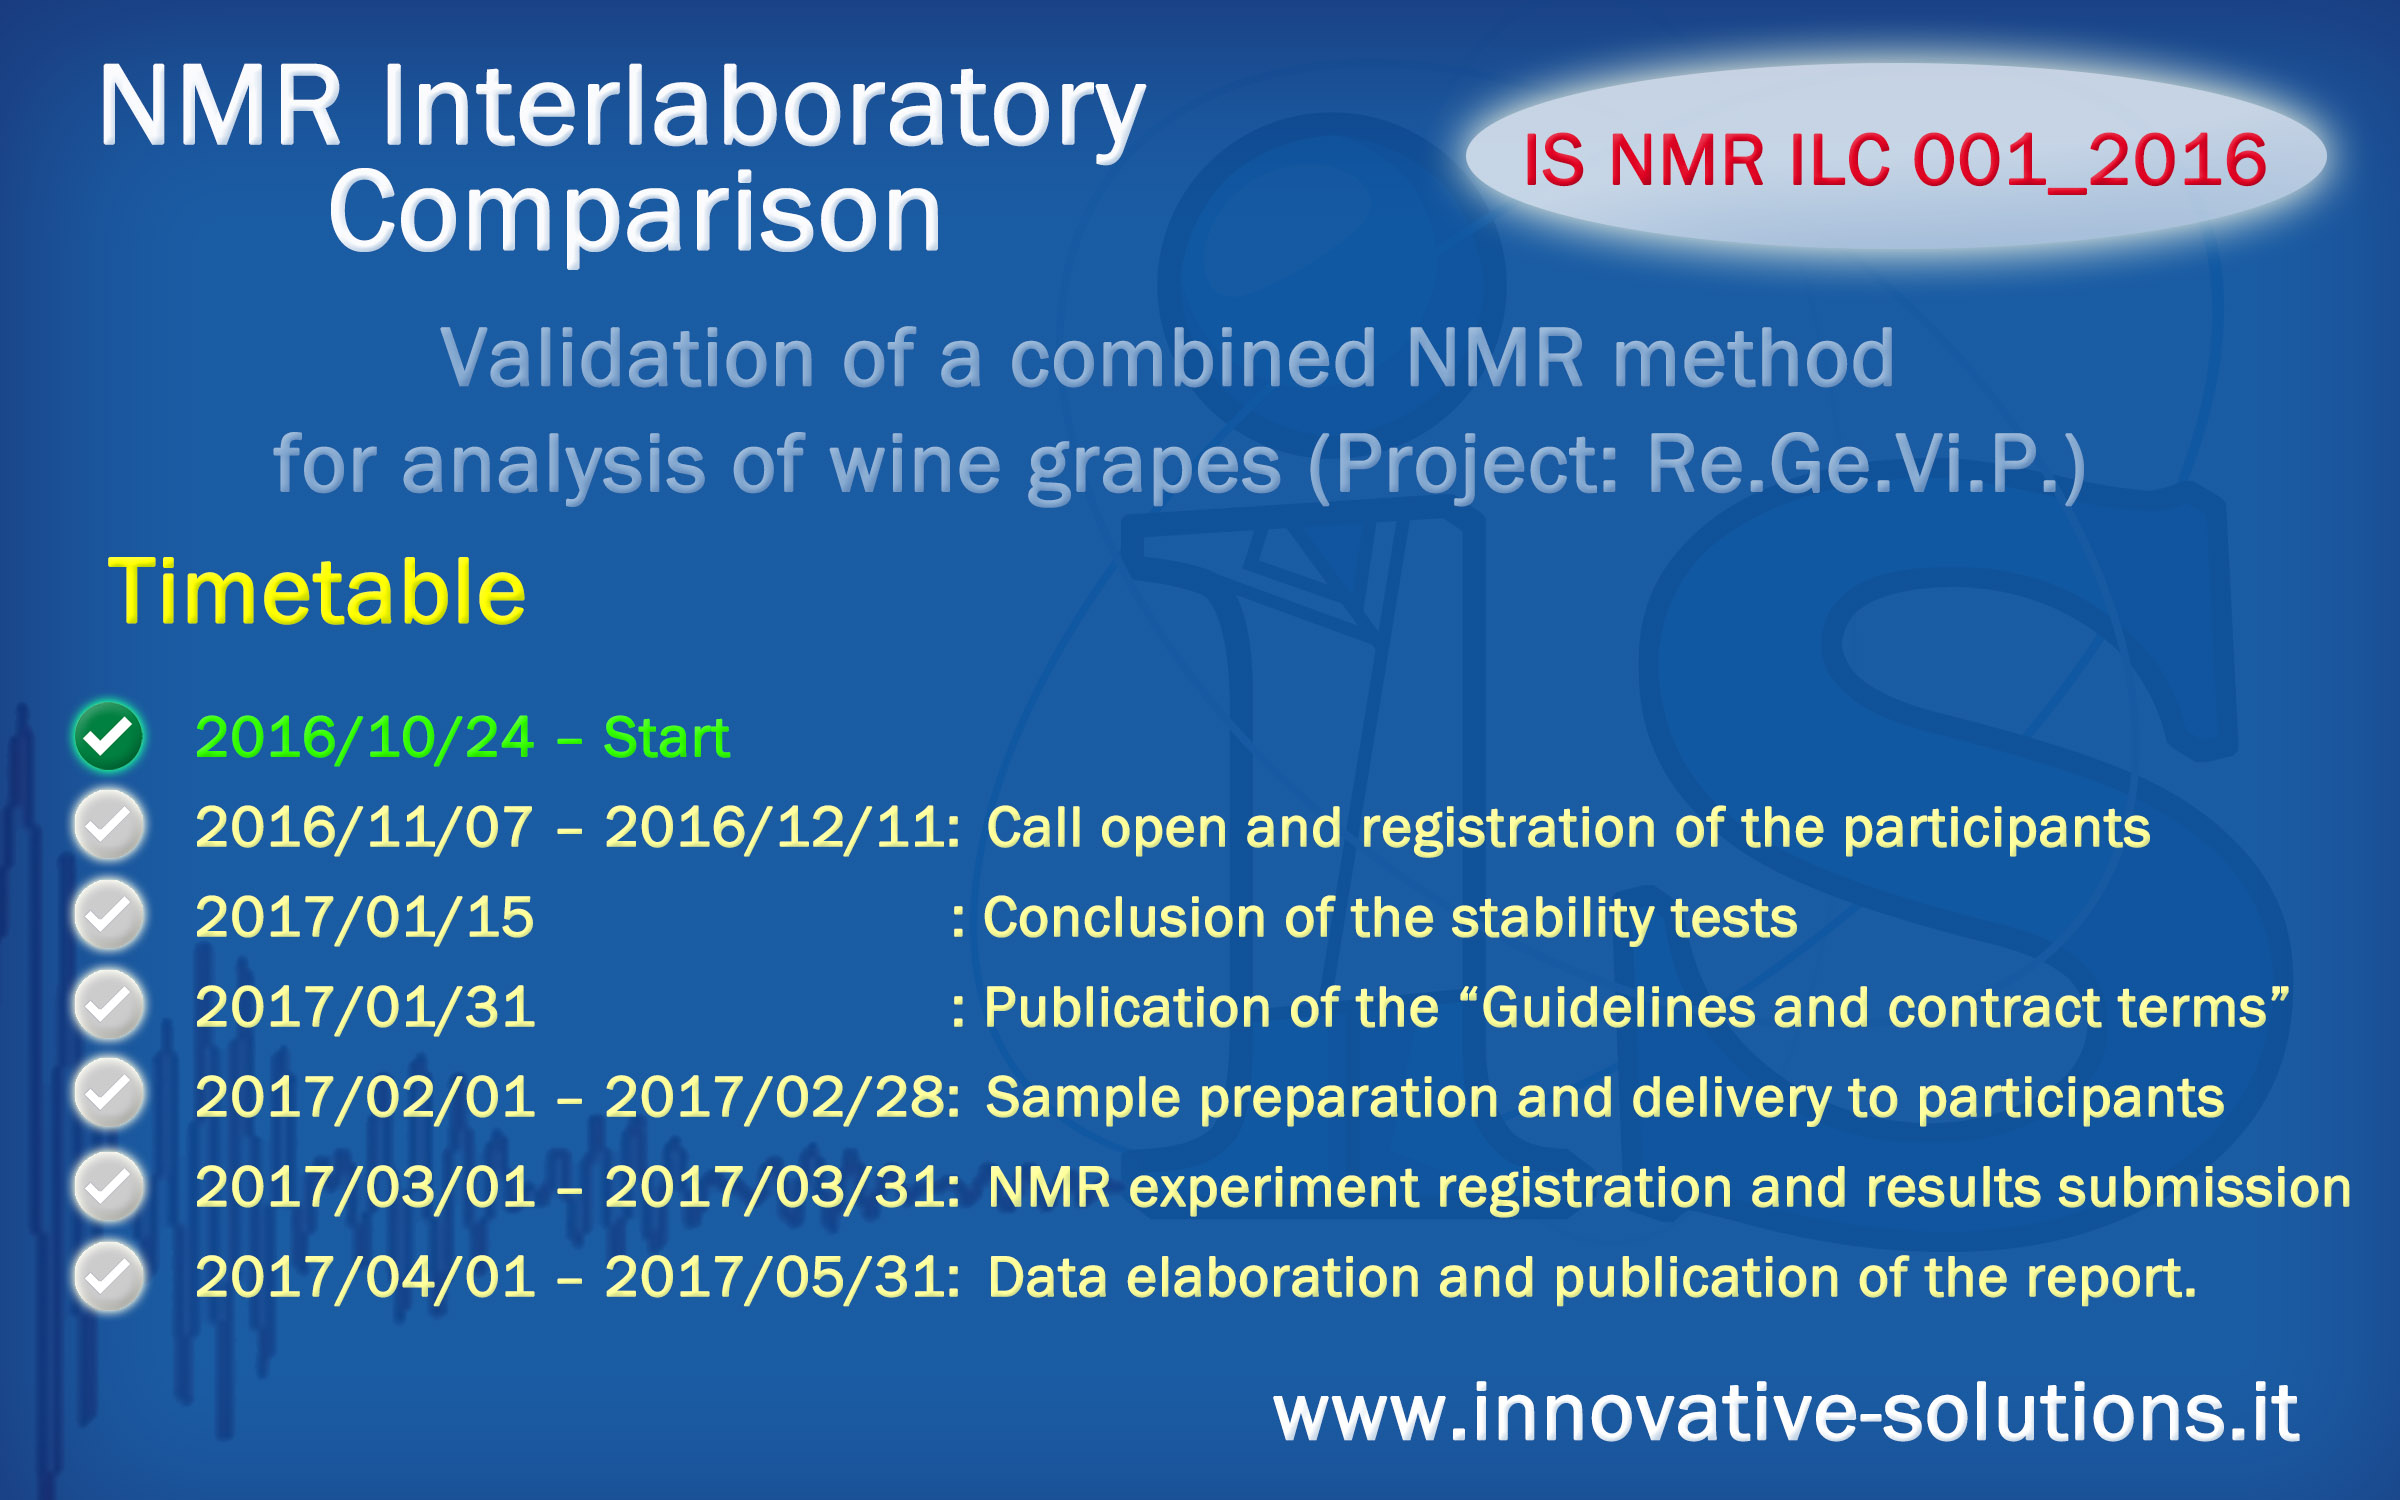 IS NMR ILC 001 2016 Timetable